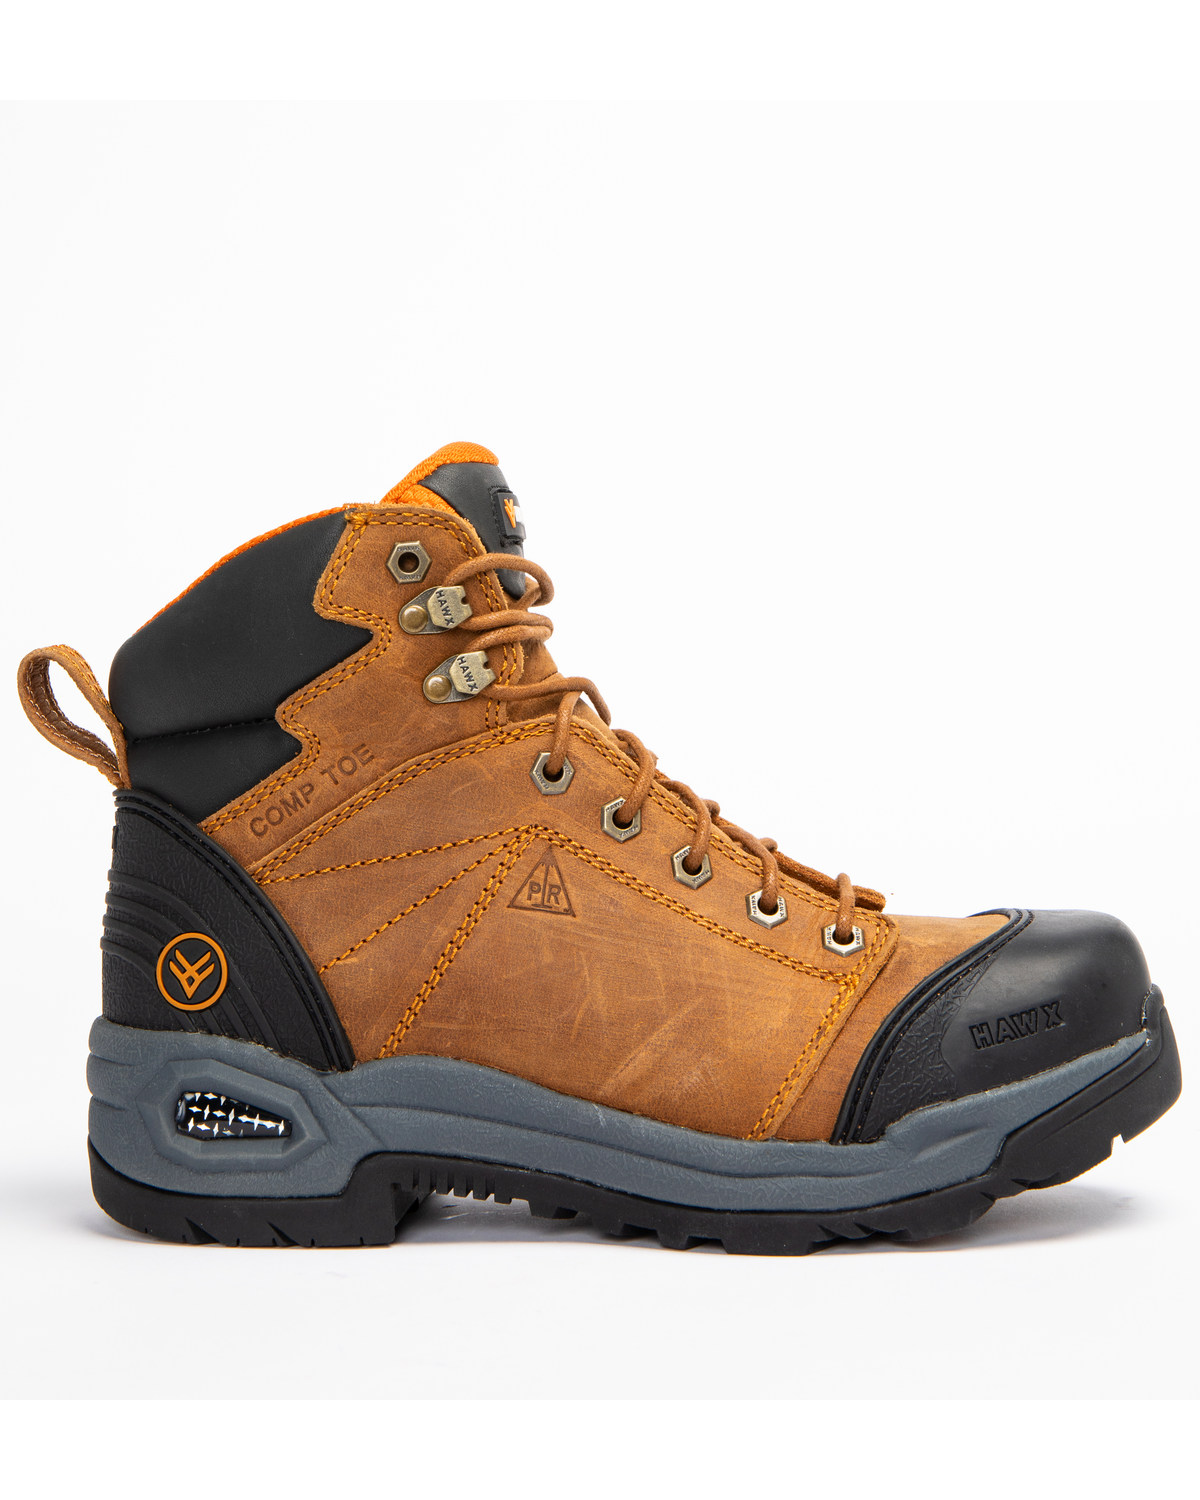 4ef40f249ba874 Hawx® Men s Lace To Toe Hiker Boots - Round Toe